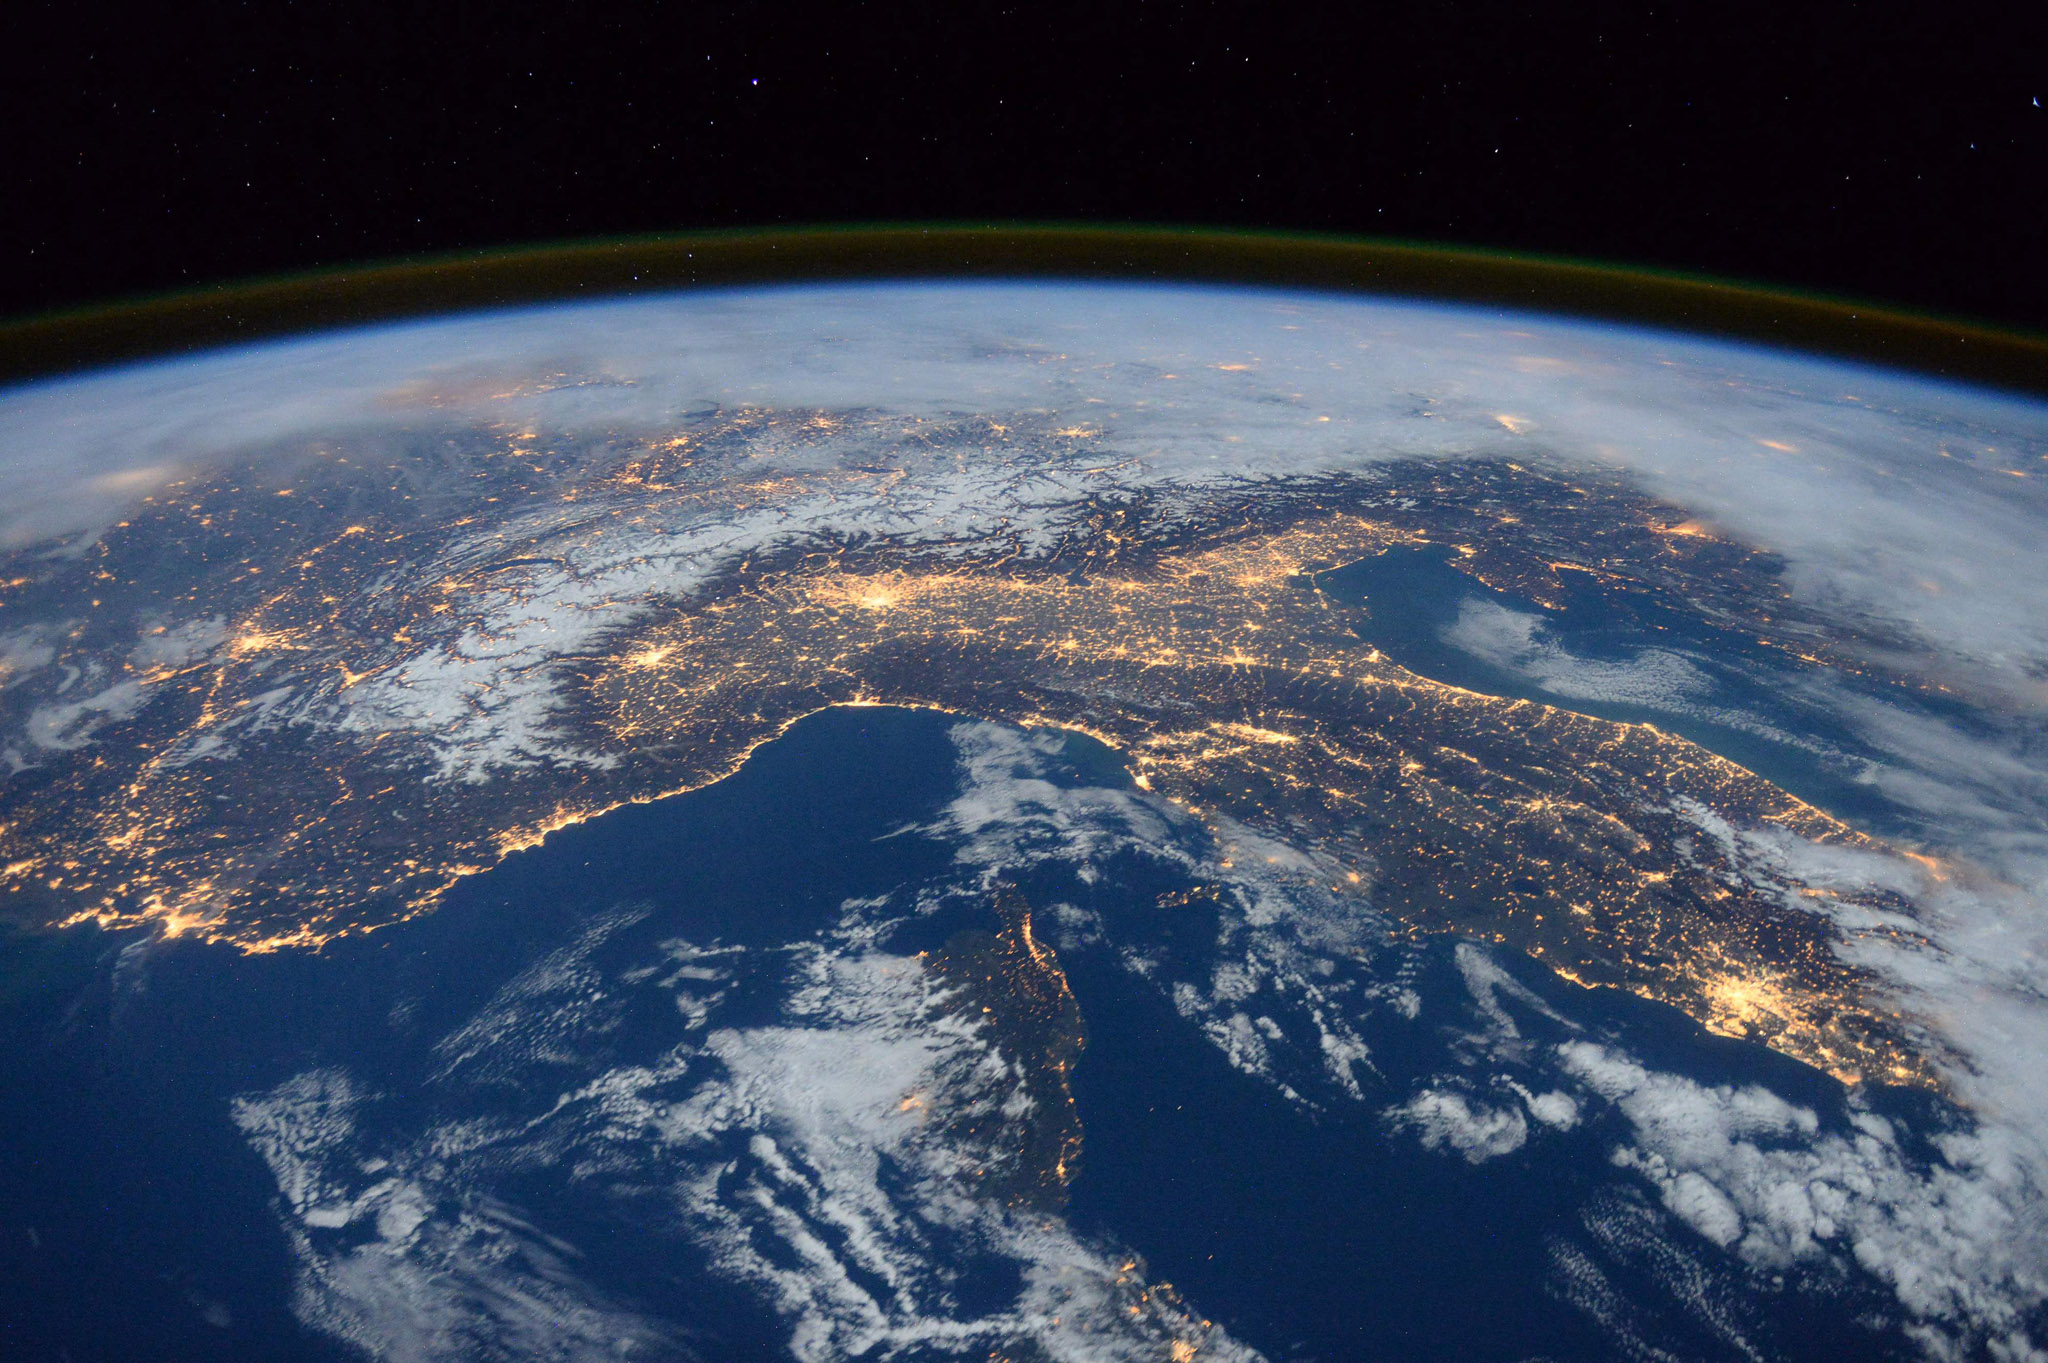 "Expedition 46 flight engineer Tim Peake ...Expedition 46 flight engineer Tim Peake of the European Space Agency (ESA) shared this stunning nighttime photograph with his social media followers on January 25, 2016, writing, ""Beautiful night pass over Italy, Alps and Mediterranean.""  / AFP / esa/nasa / TIM PEAKE / == RESTRICTED TO EDITORIAL USE / MANDATORY CREDIT: ""AFP PHOTO / HANDOUT / ESA/NASA / TIM PEAKE ""/ NO MARKETING / NO ADVERTISING CAMPAIGNS / DISTRIBUTED AS A SERVICE TO CLIENTS == TIM PEAKE/AFP/Getty Images"